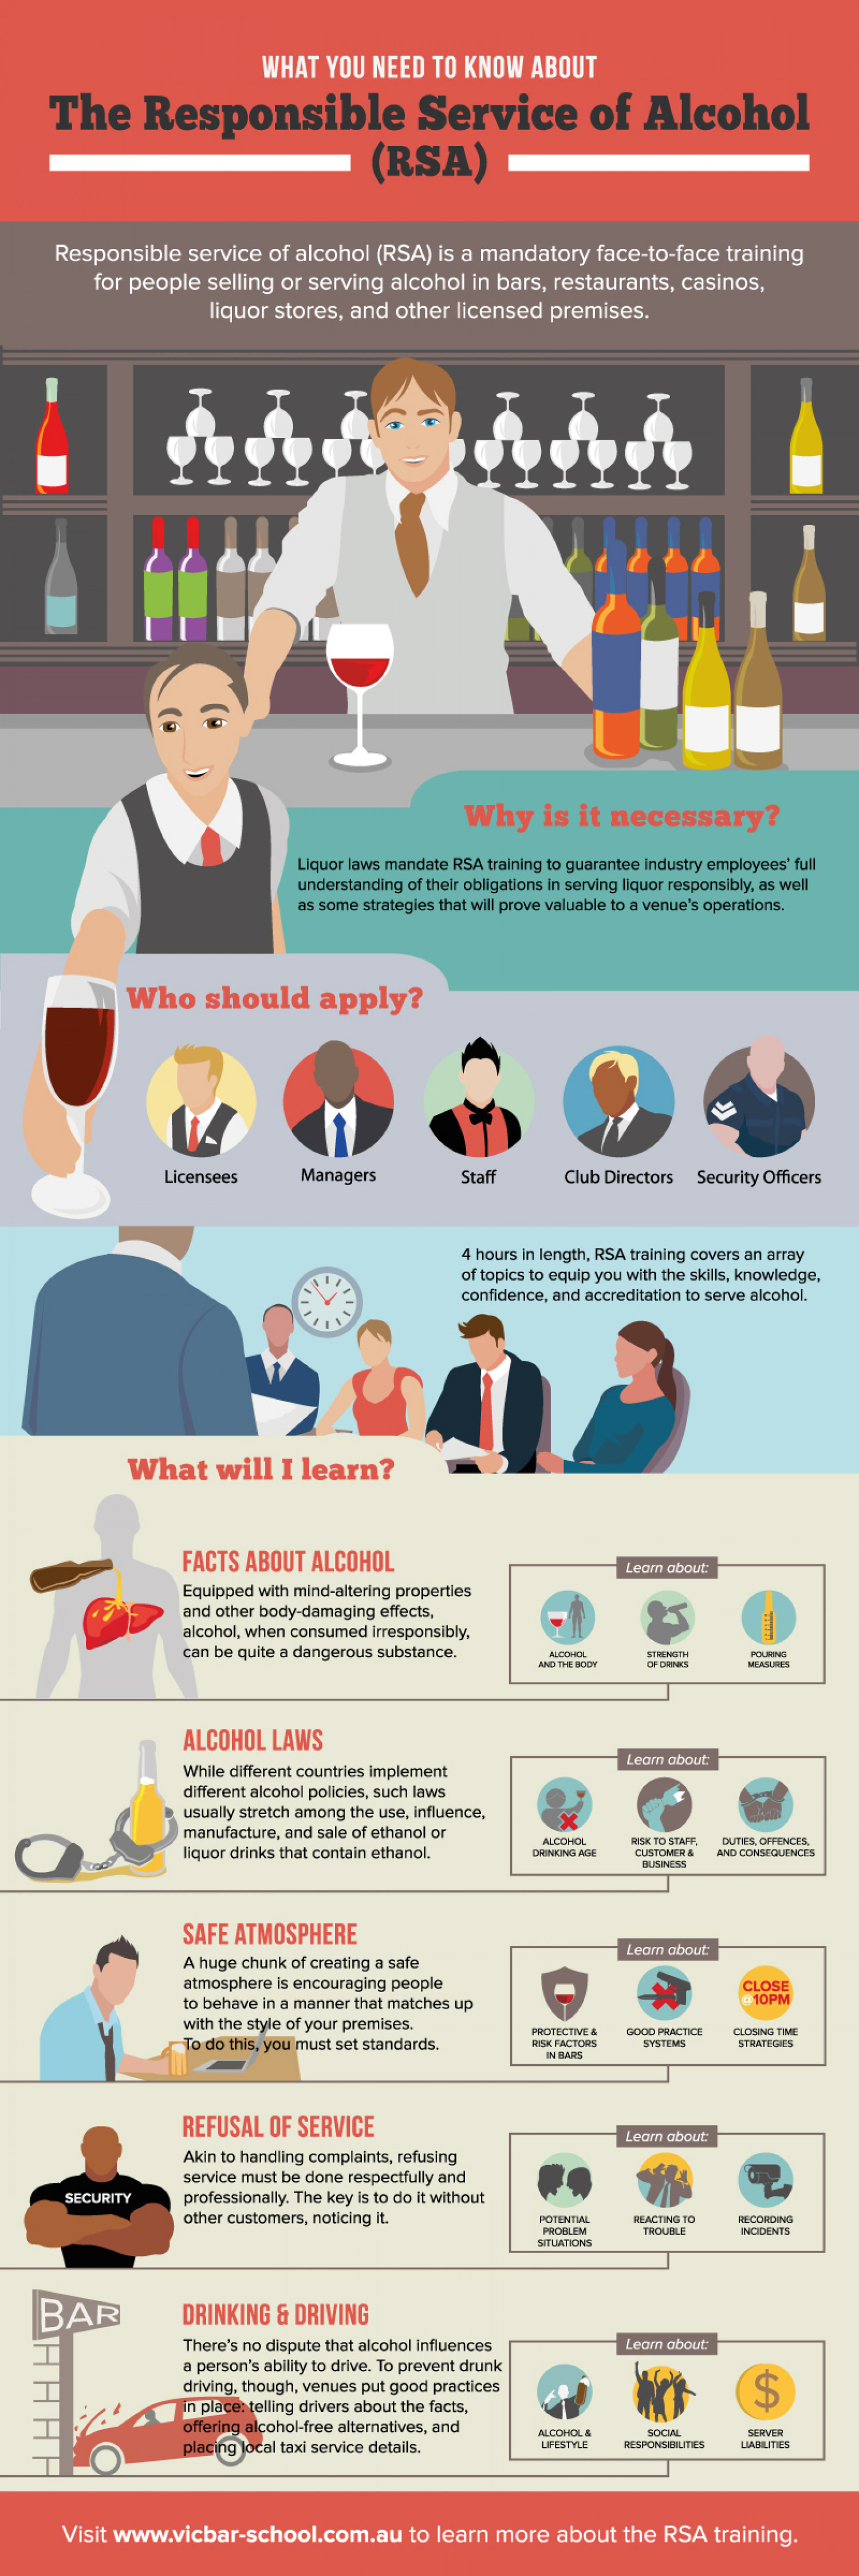 What You Need to Know About The Responsible Service of Alcohol Infographic